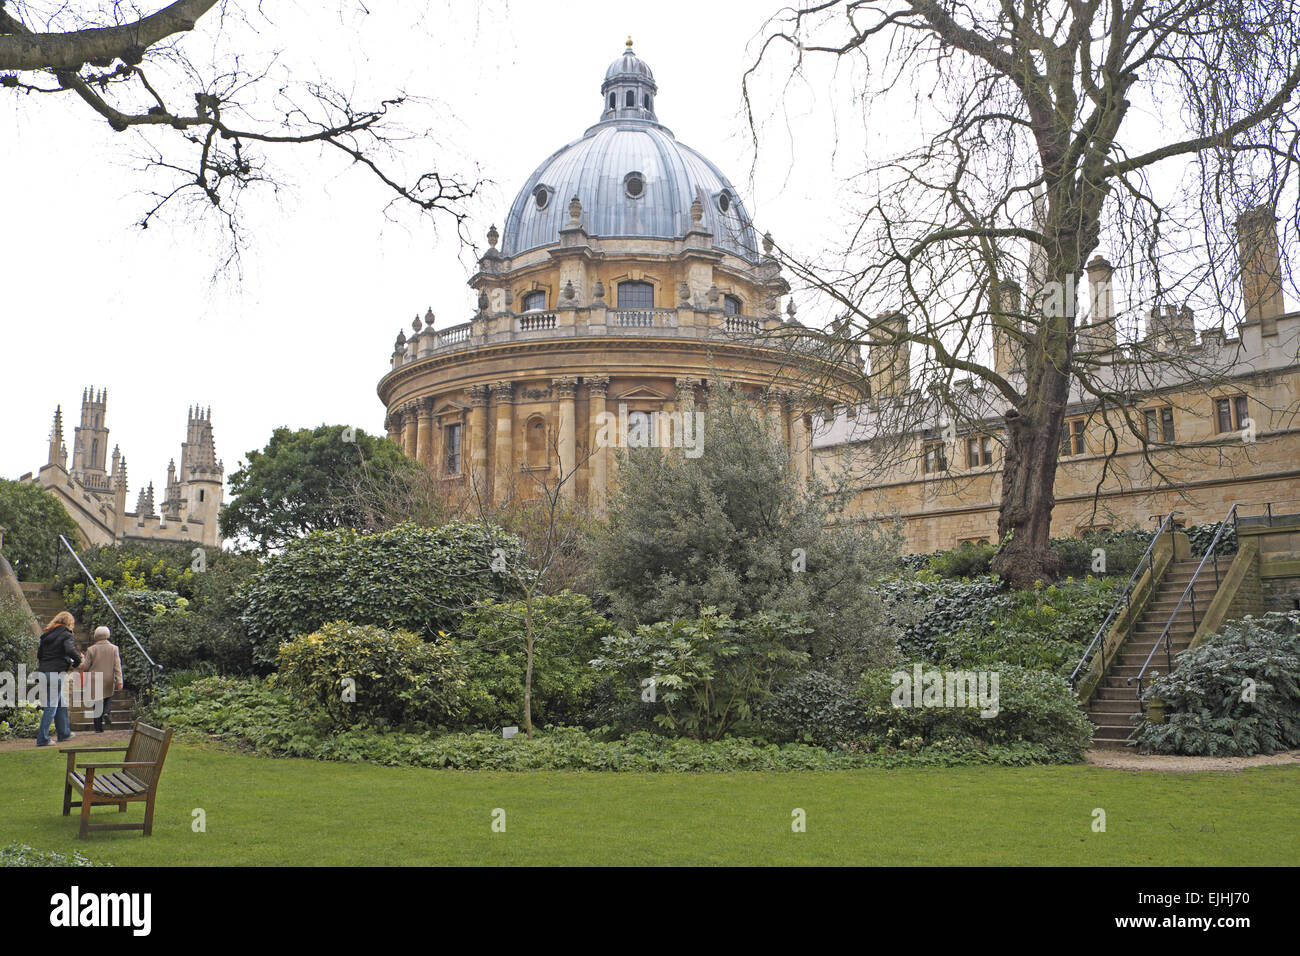 Radcliffe Camera building seen from Fellows Garden, Exeter College, Oxford, Oxfordshire, England, UK. - Stock Image